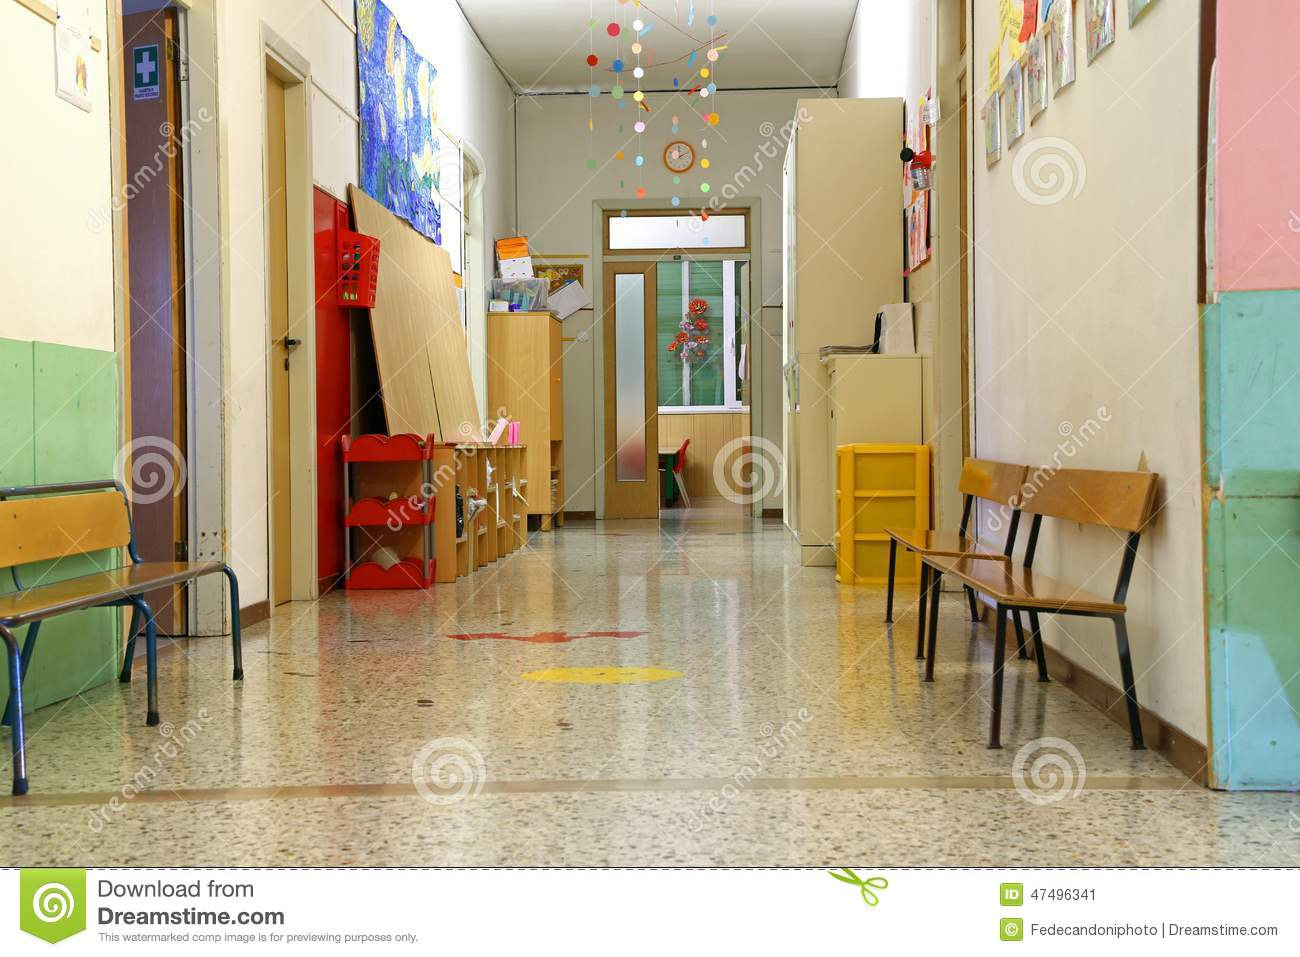 corridor of a nursery school during the holidays without children